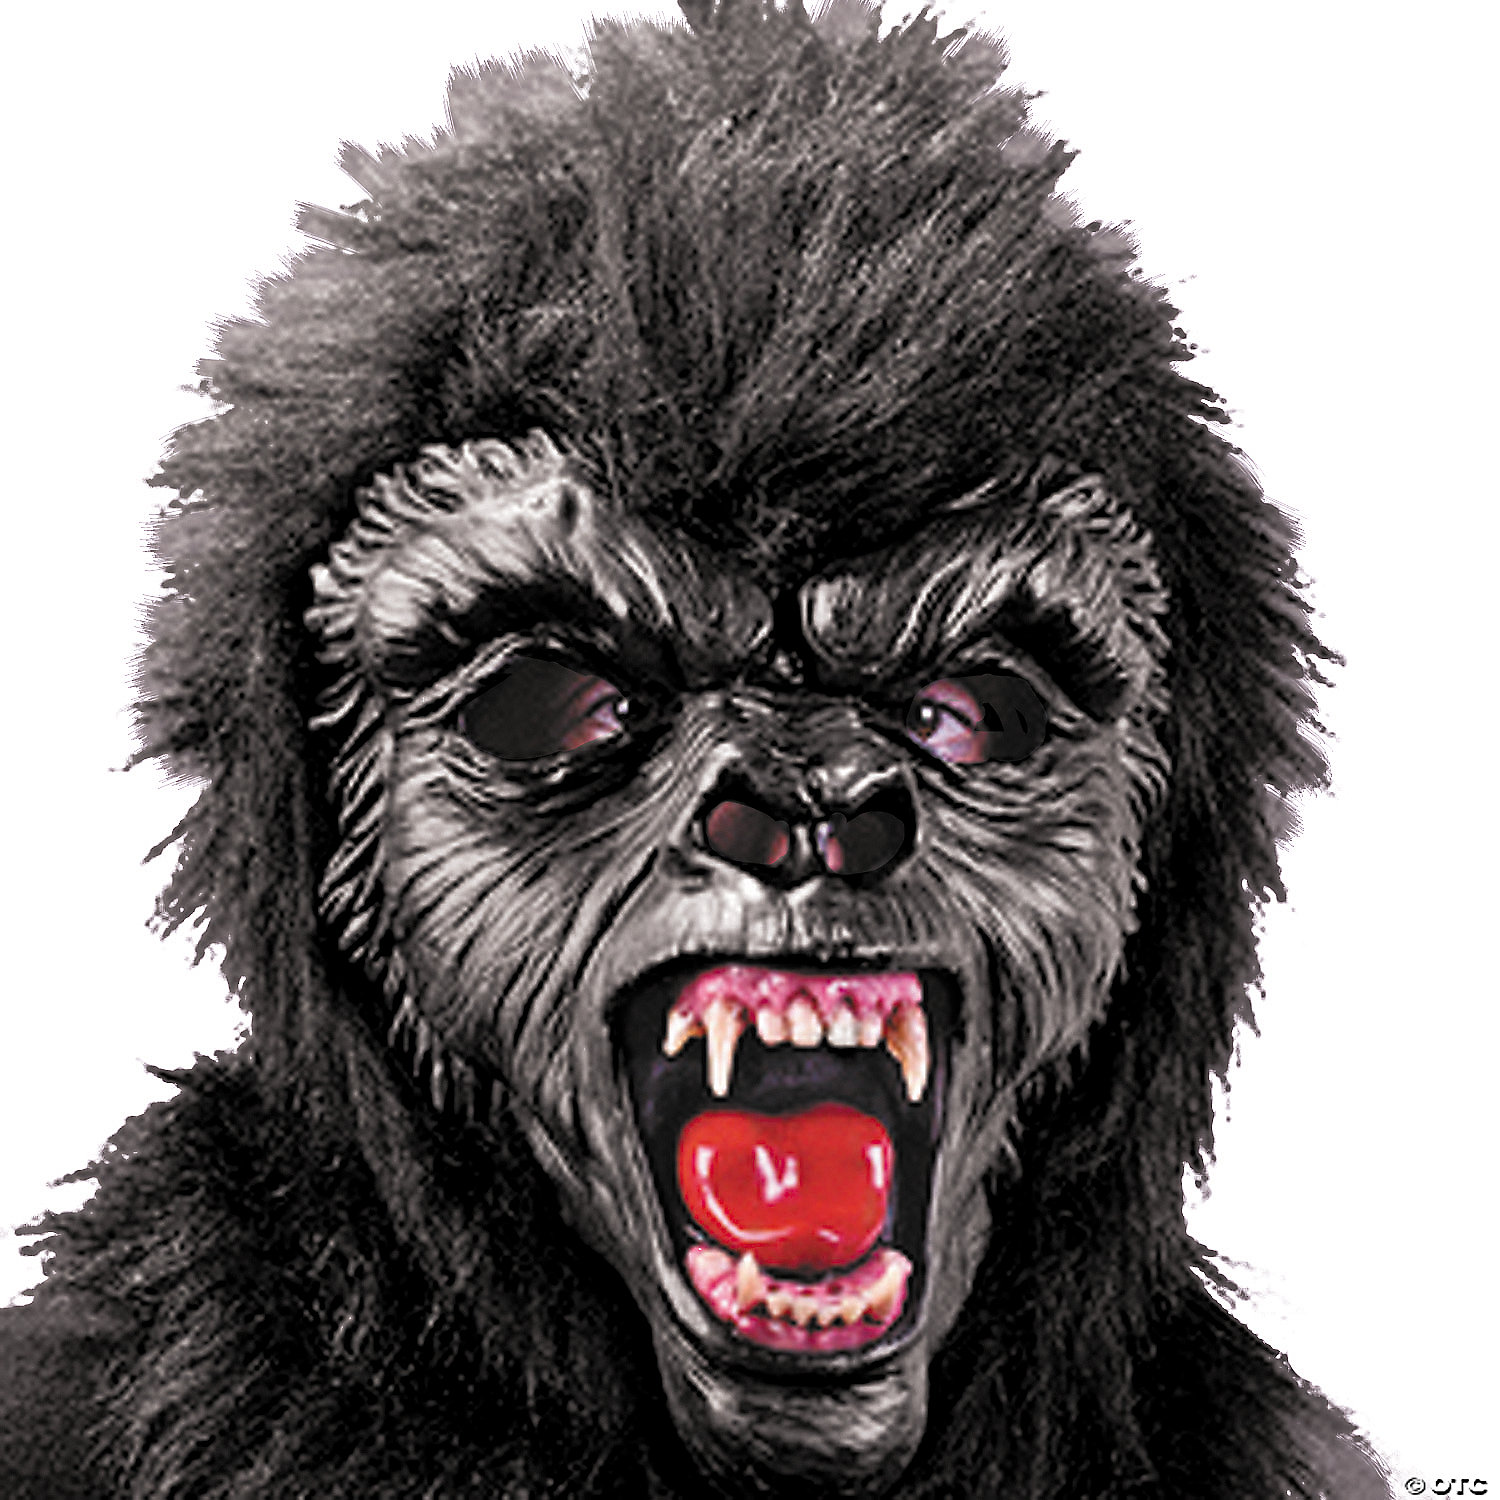 Deluxe Gorilla Mask with Teeth